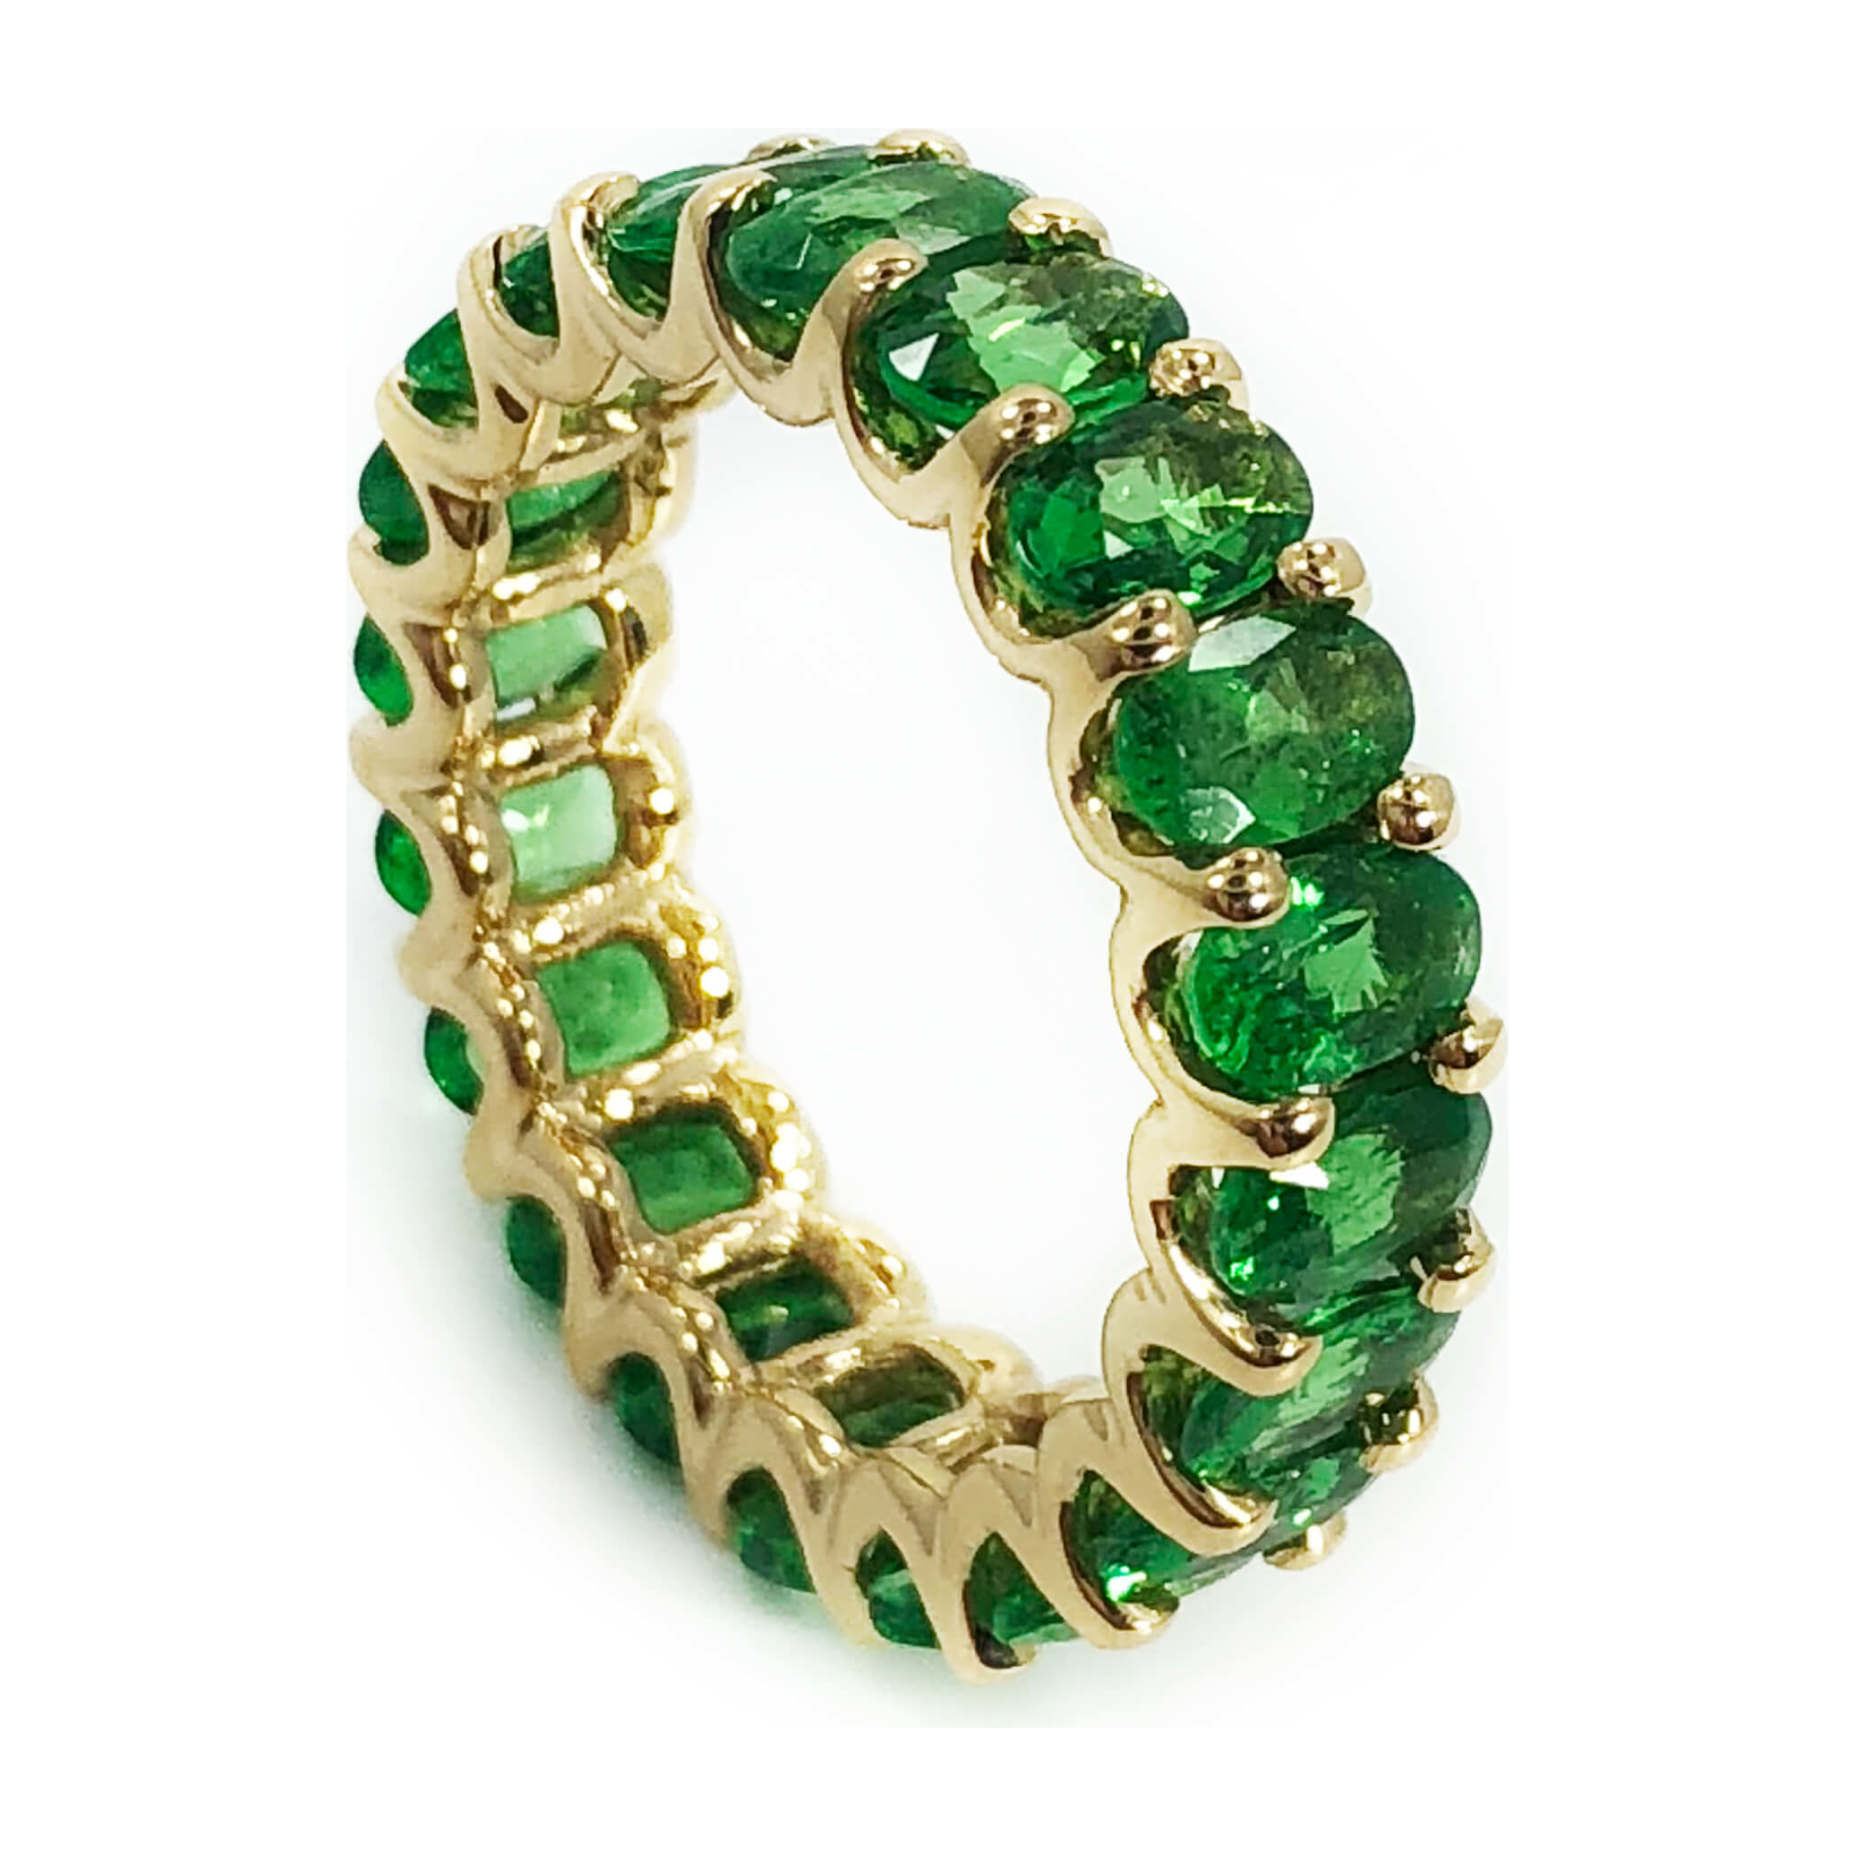 Tsavorite Garnet Eternity Ring